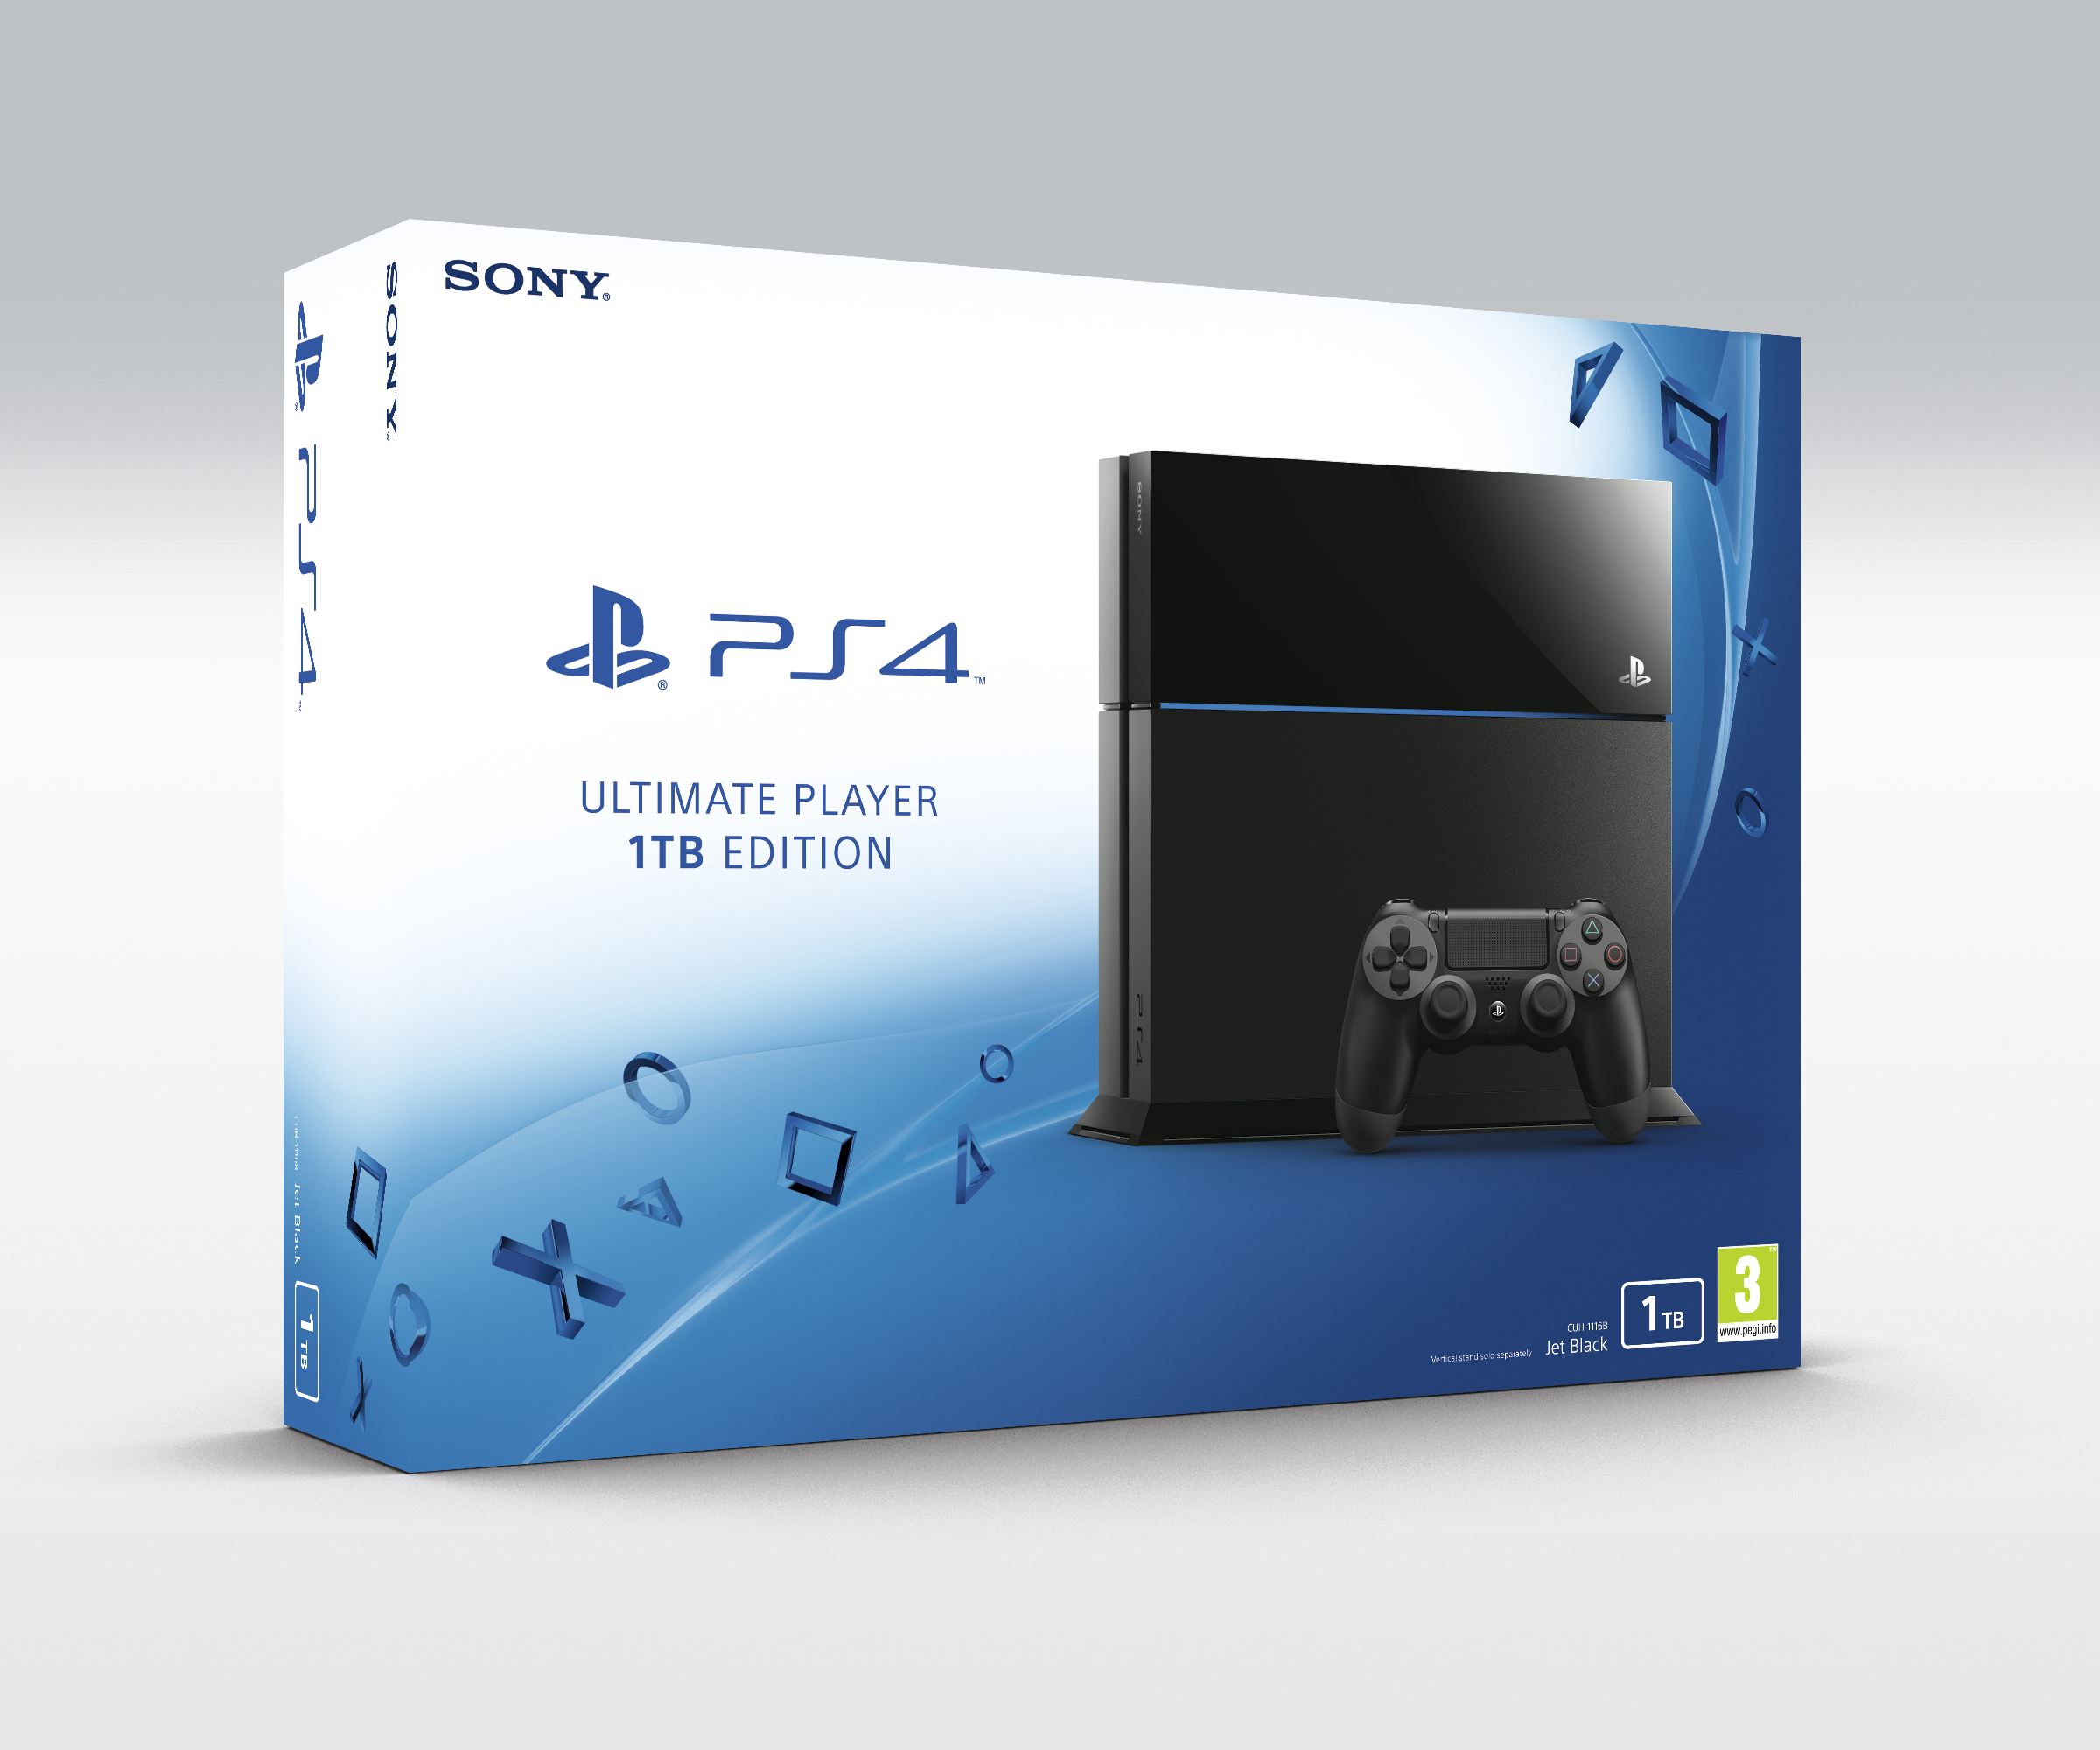 Over 30 million PlayStation 4 units sold worldwide